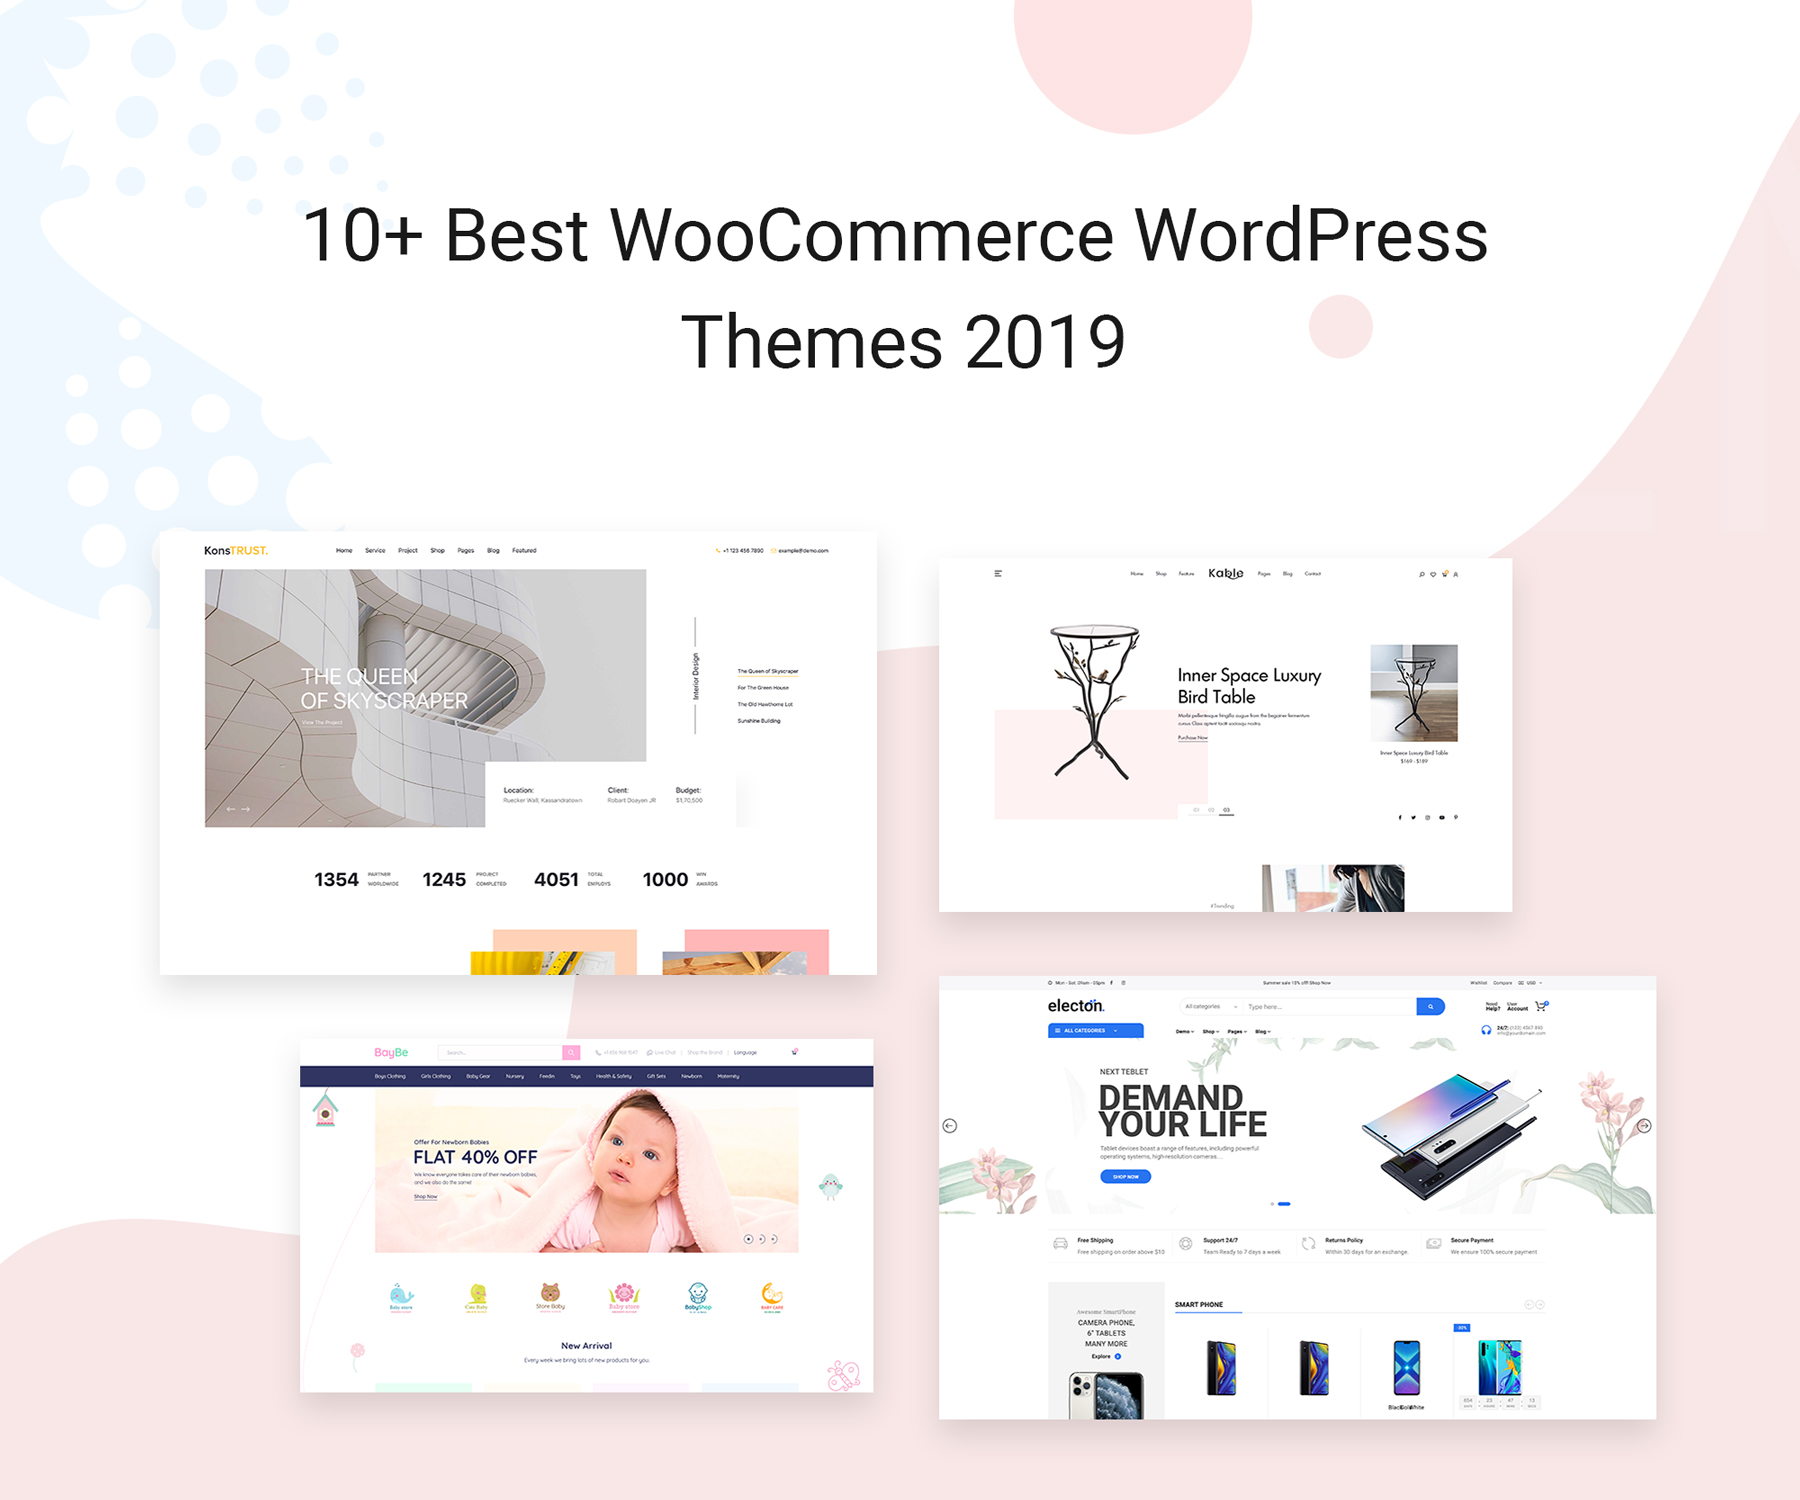 10+ Best WooCommerce WordPress Themes 2019